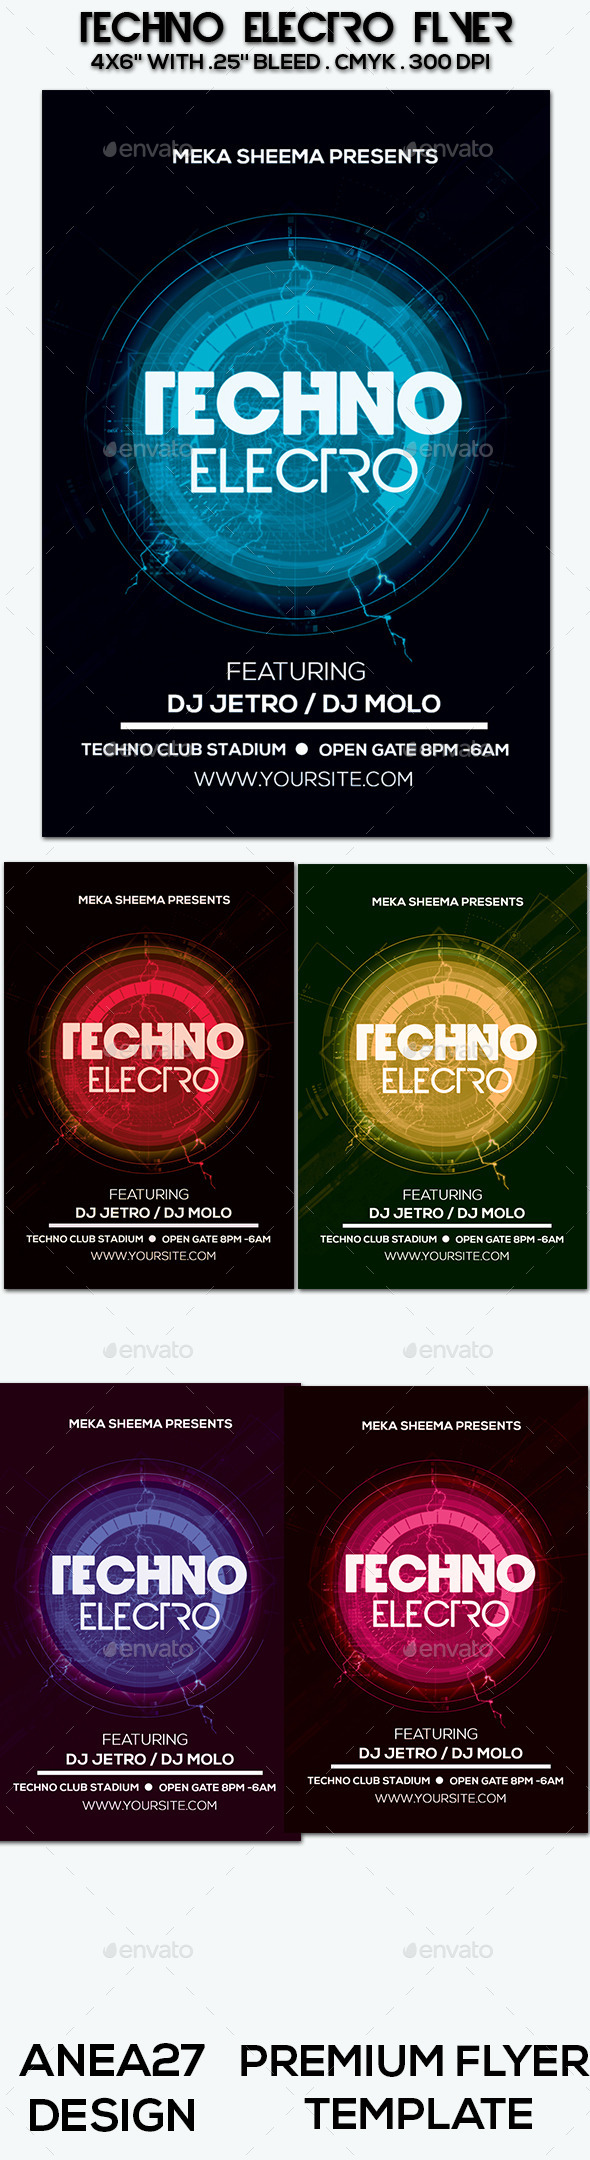 Techno Electro Flyer - Clubs & Parties Events